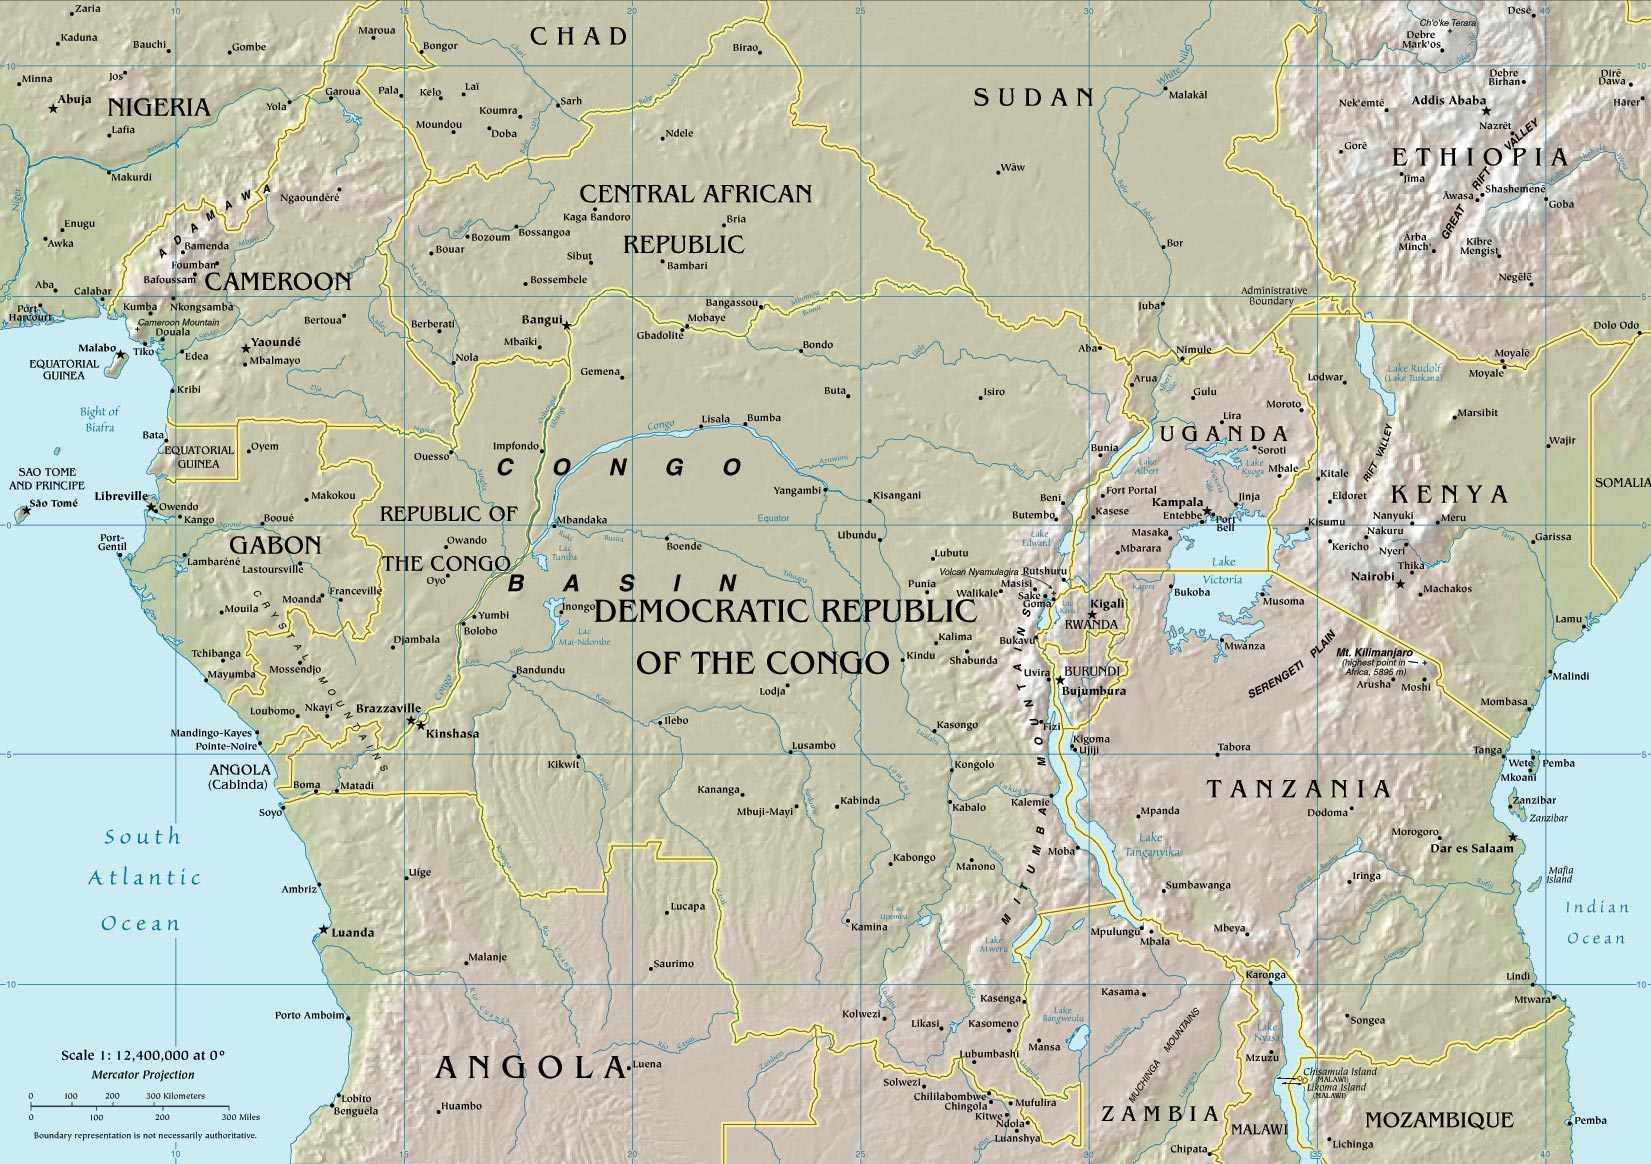 Central Africa Physical Map Central Africa Physical Map   Lake Victoria, Kenya